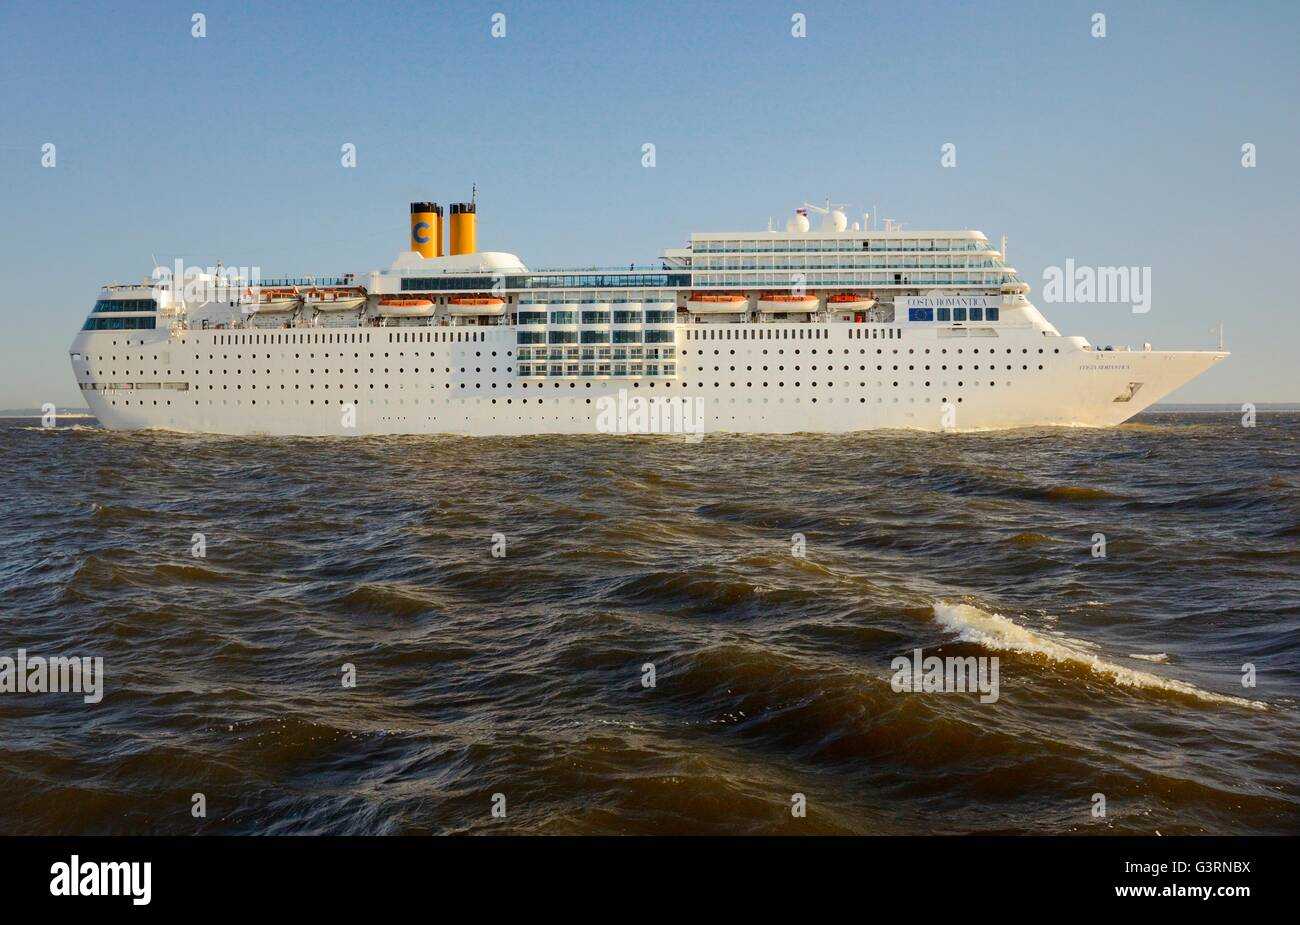 Russia. Costa Line ocean cruise ship Costa Romantica outbound from Saint Petersburg in the Gulf of Finland. Summer - Stock Image